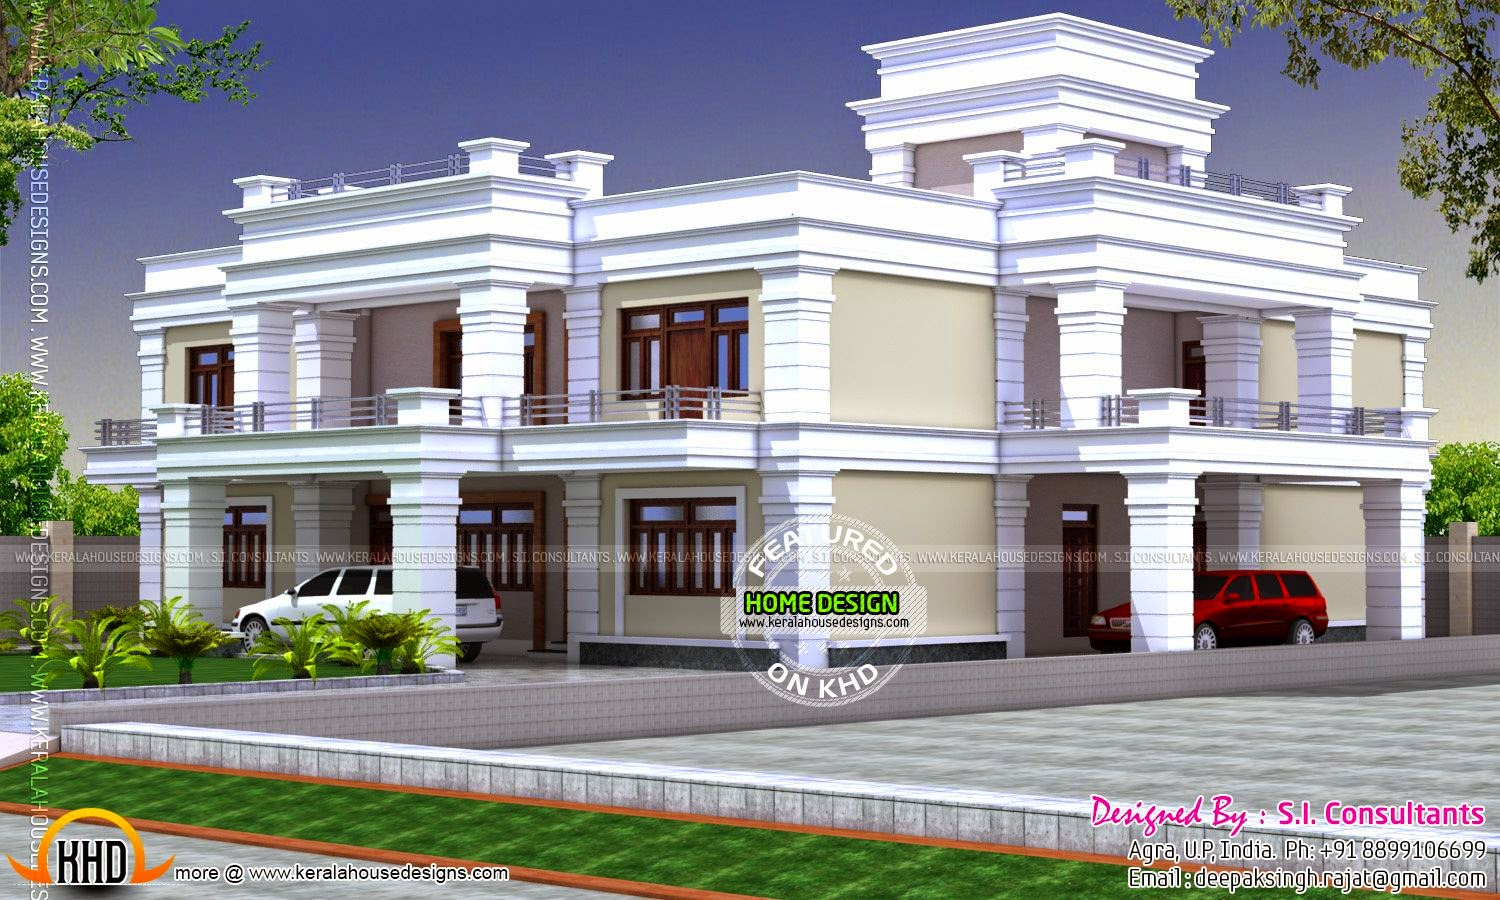 Decorative Flat Roof House Kerala Home Design And Floor